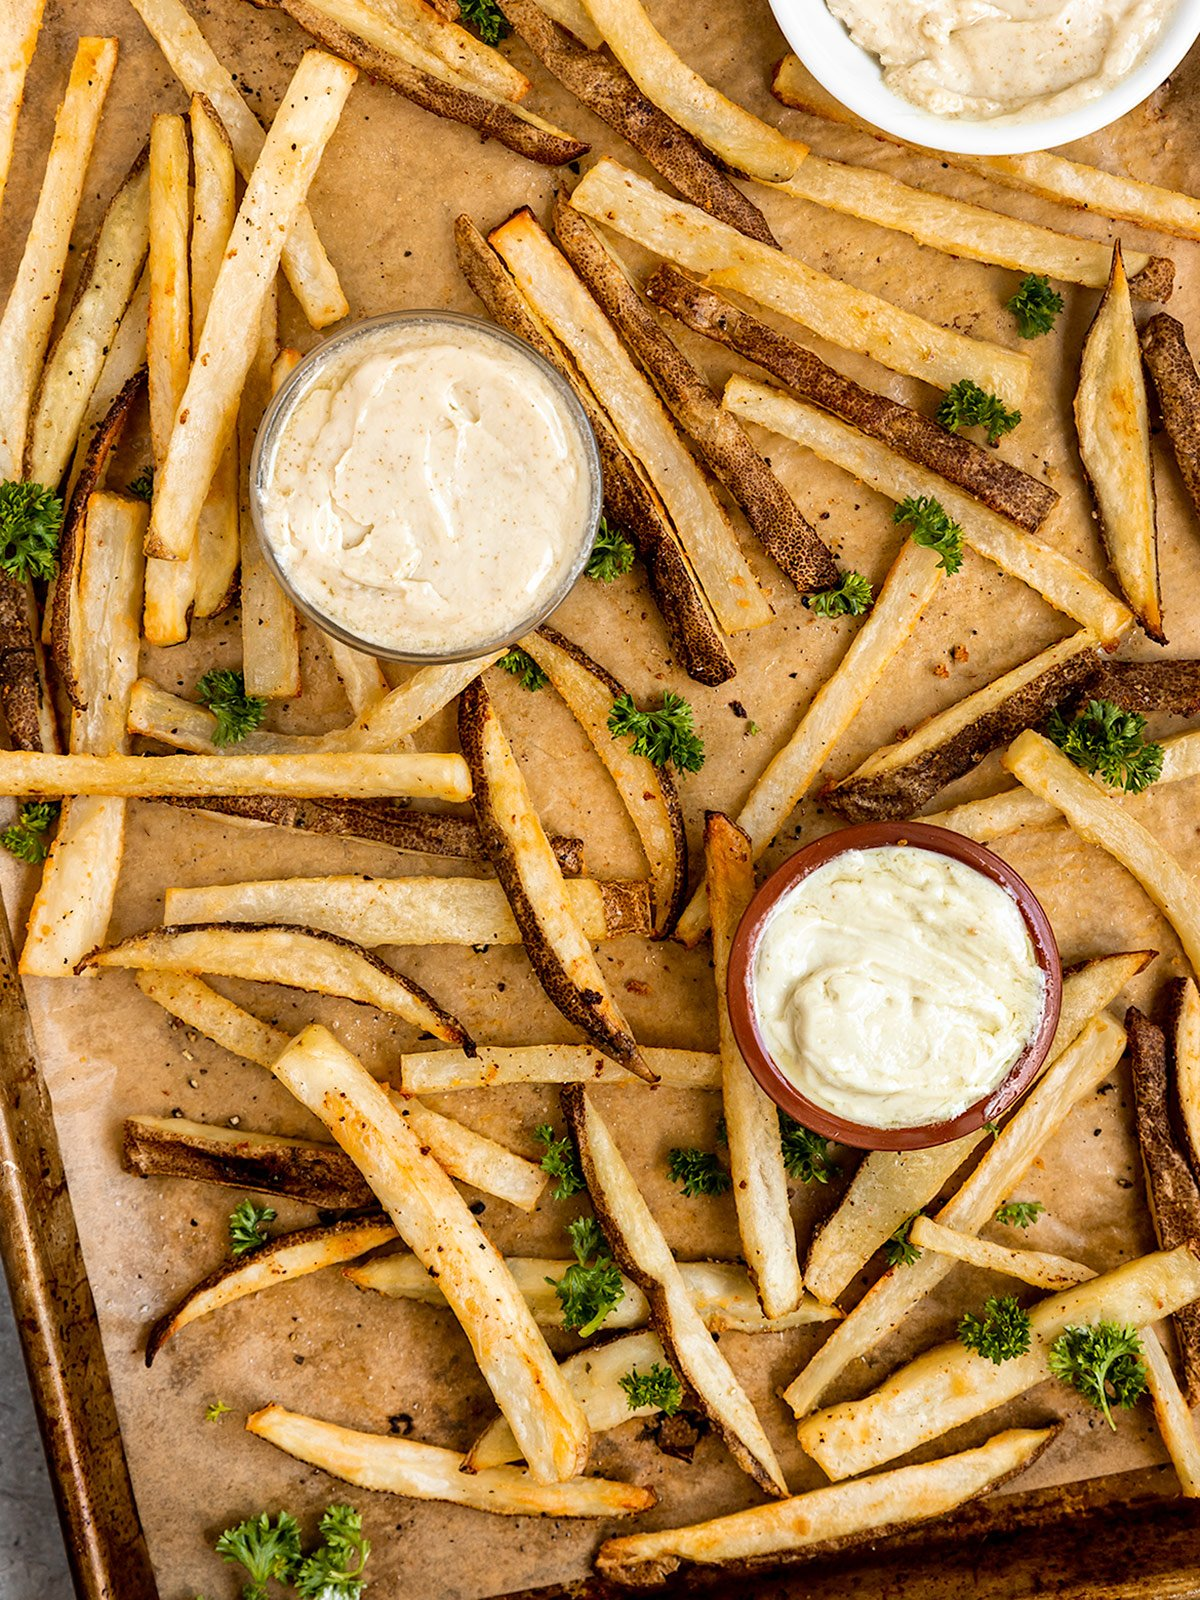 overhead shot of tray of baked fries with truffle and parsley with two bowls of mayo